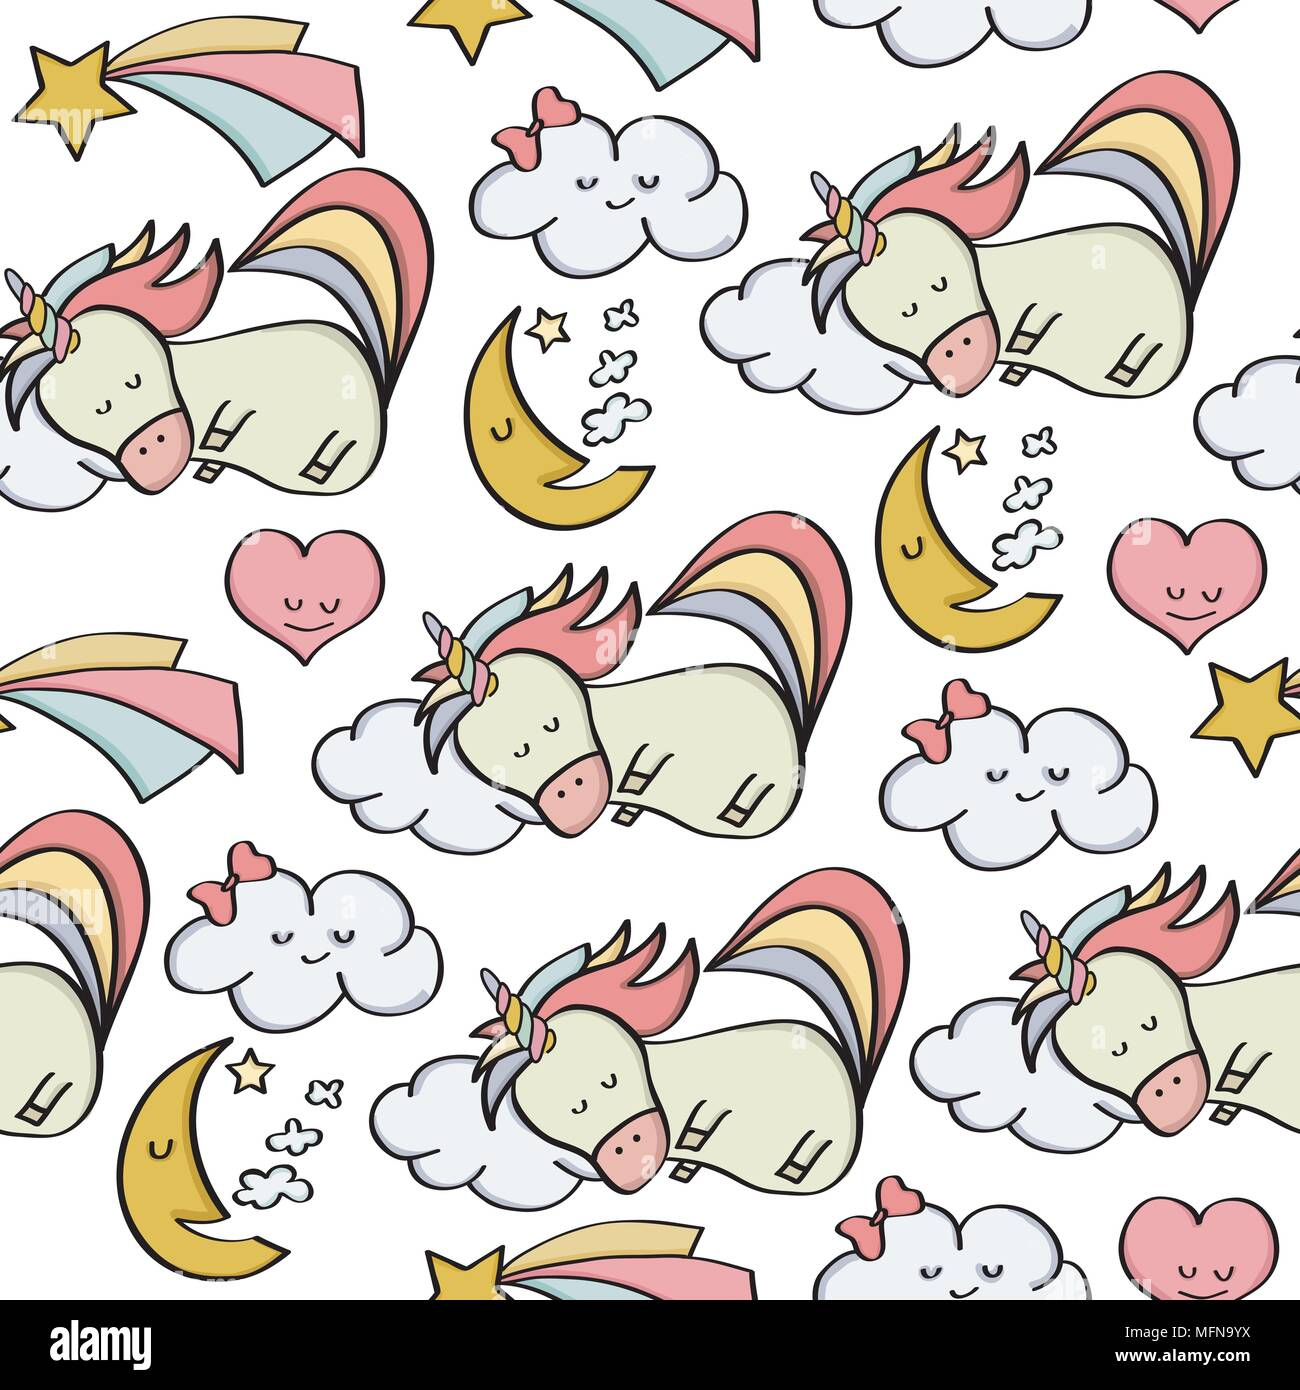 doodle seamless pattern with unicorns and other fantasy magical